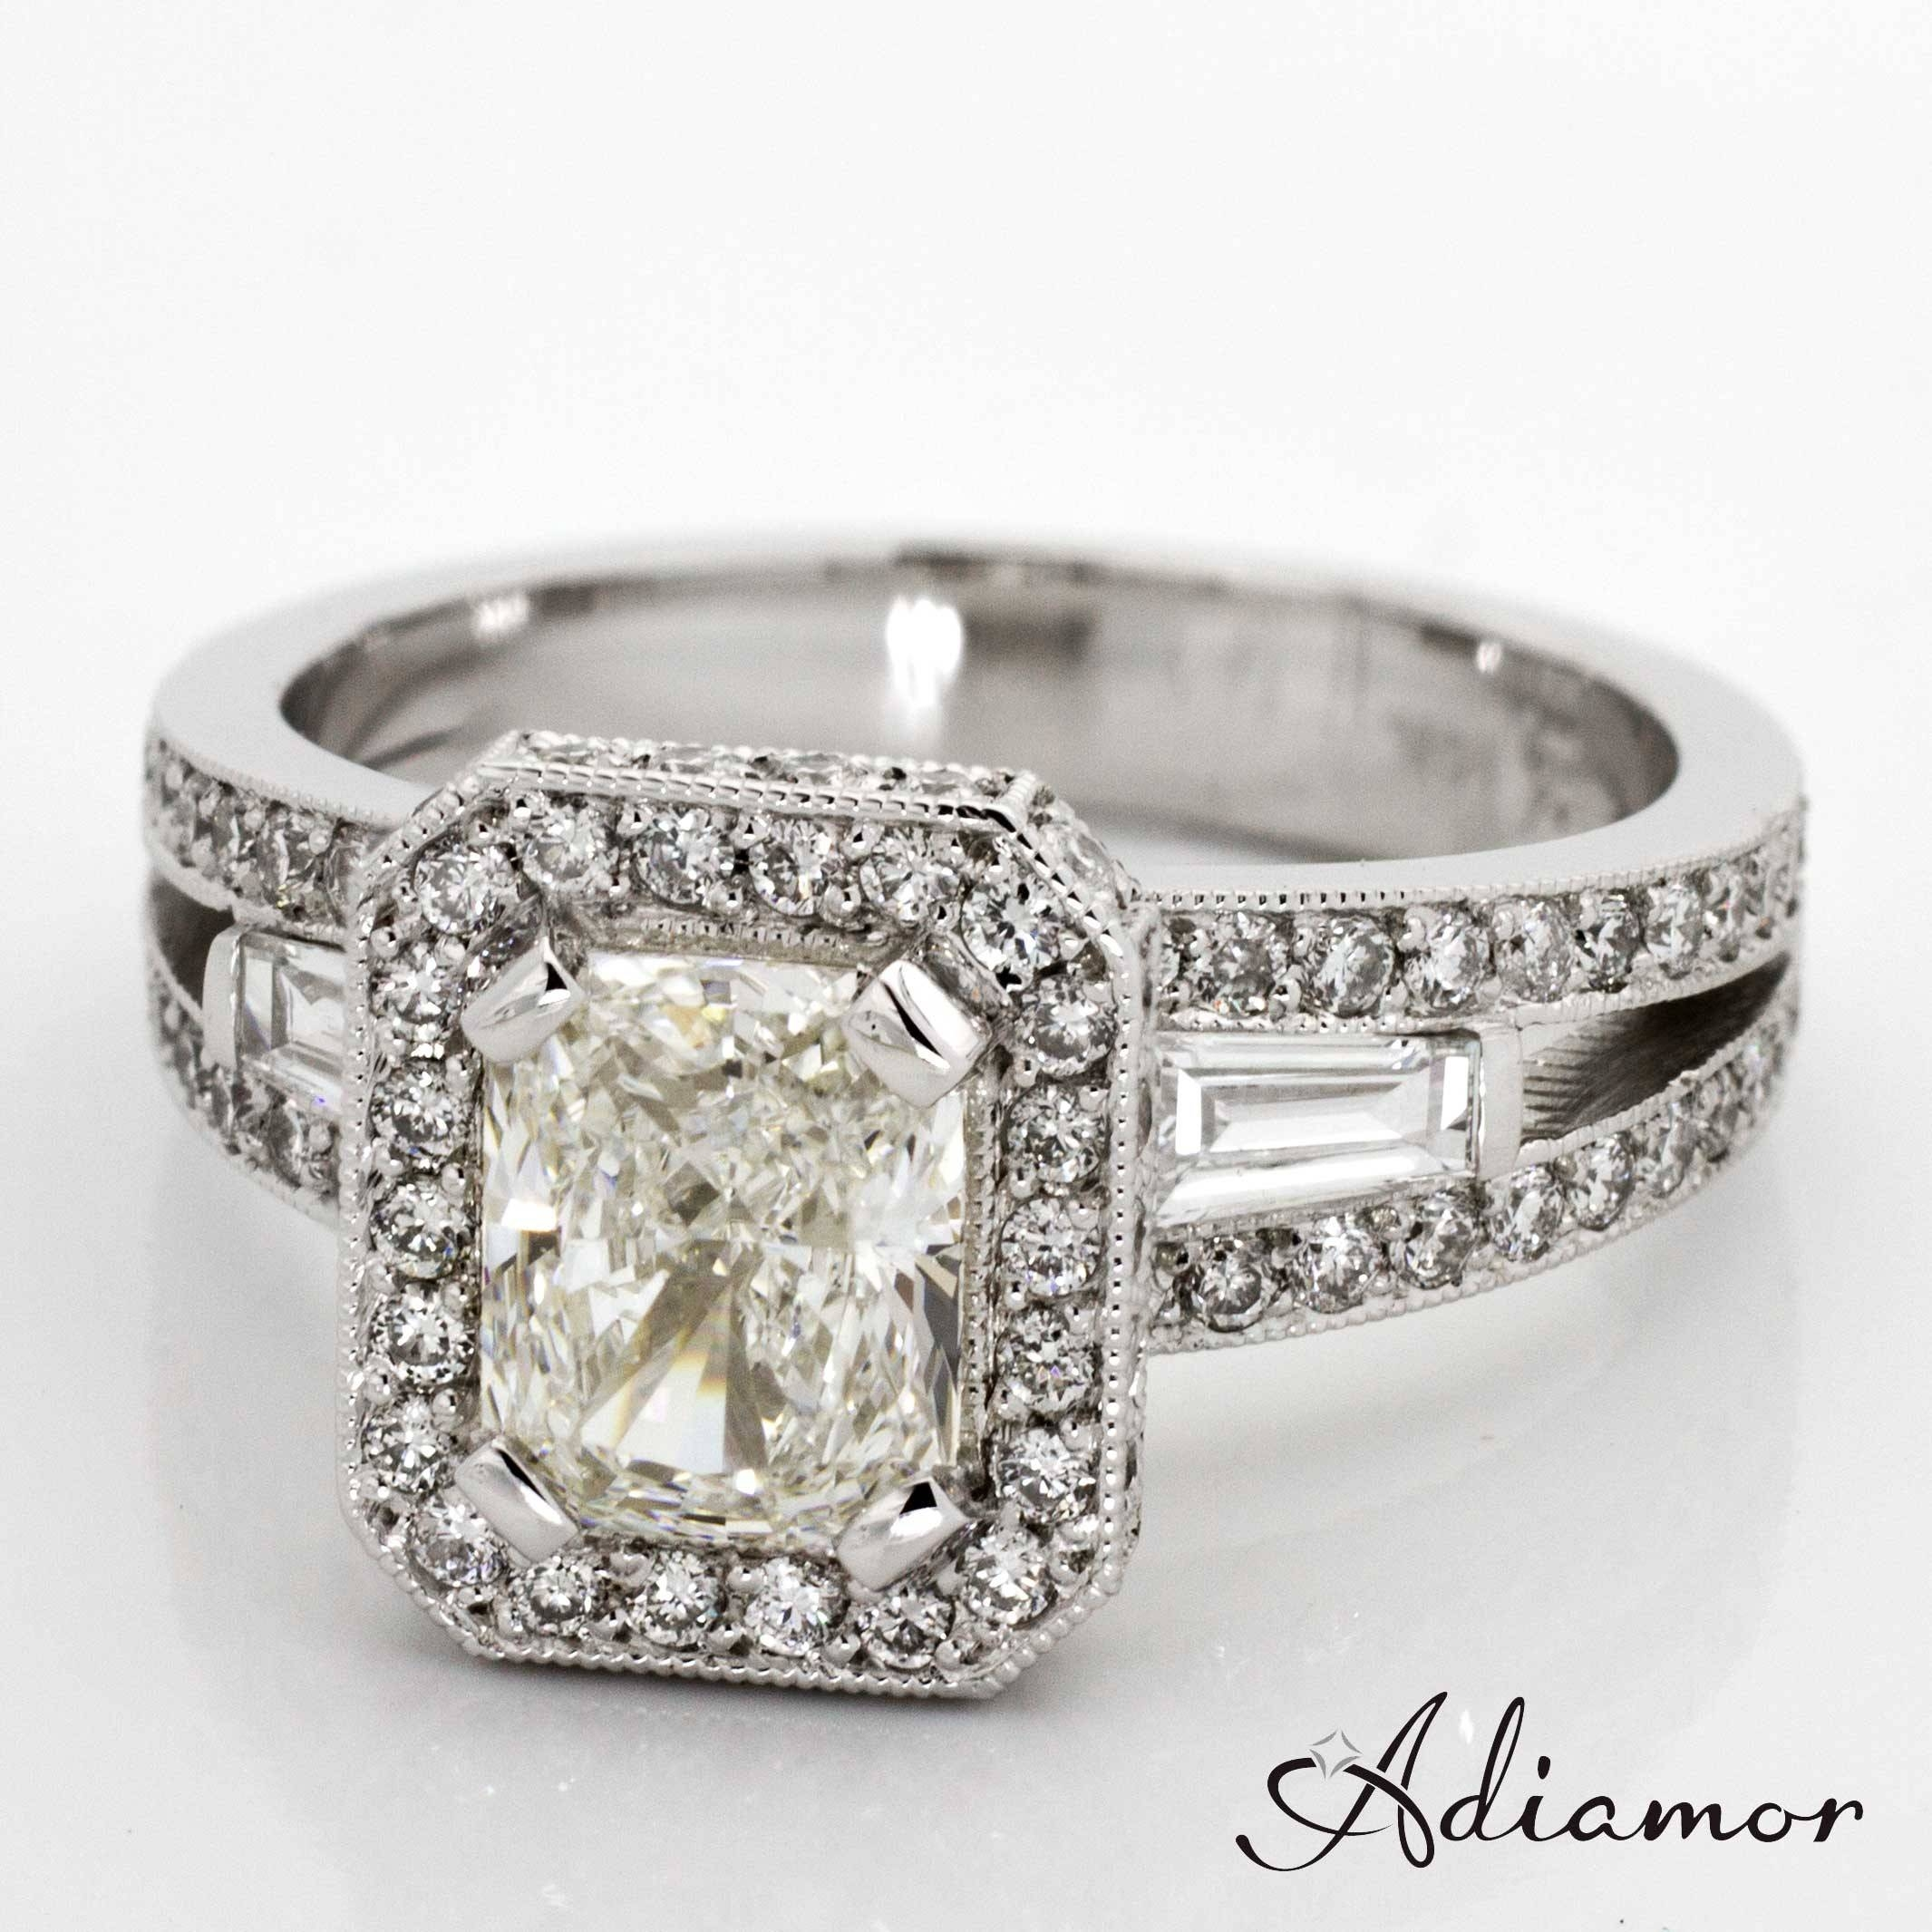 Masculine Wedding Rings Best Of Wedding Ring Archives Adiamor Blog Within Masculine Wedding Rings (Gallery 13 of 15)